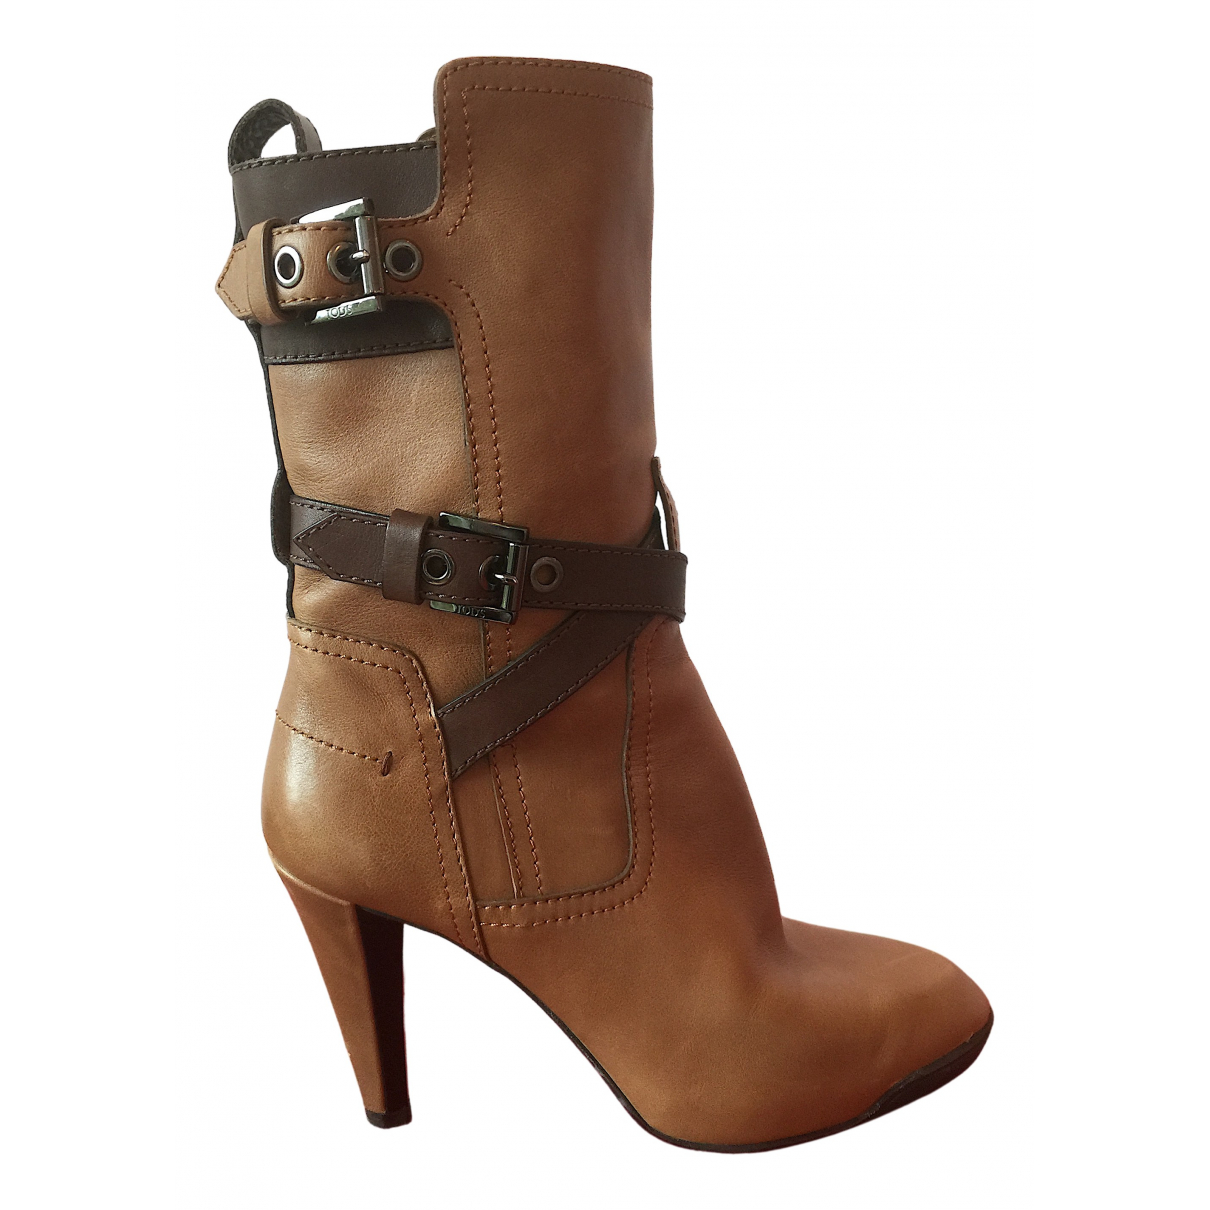 Tod's N Brown Leather Boots for Women 36.5 EU